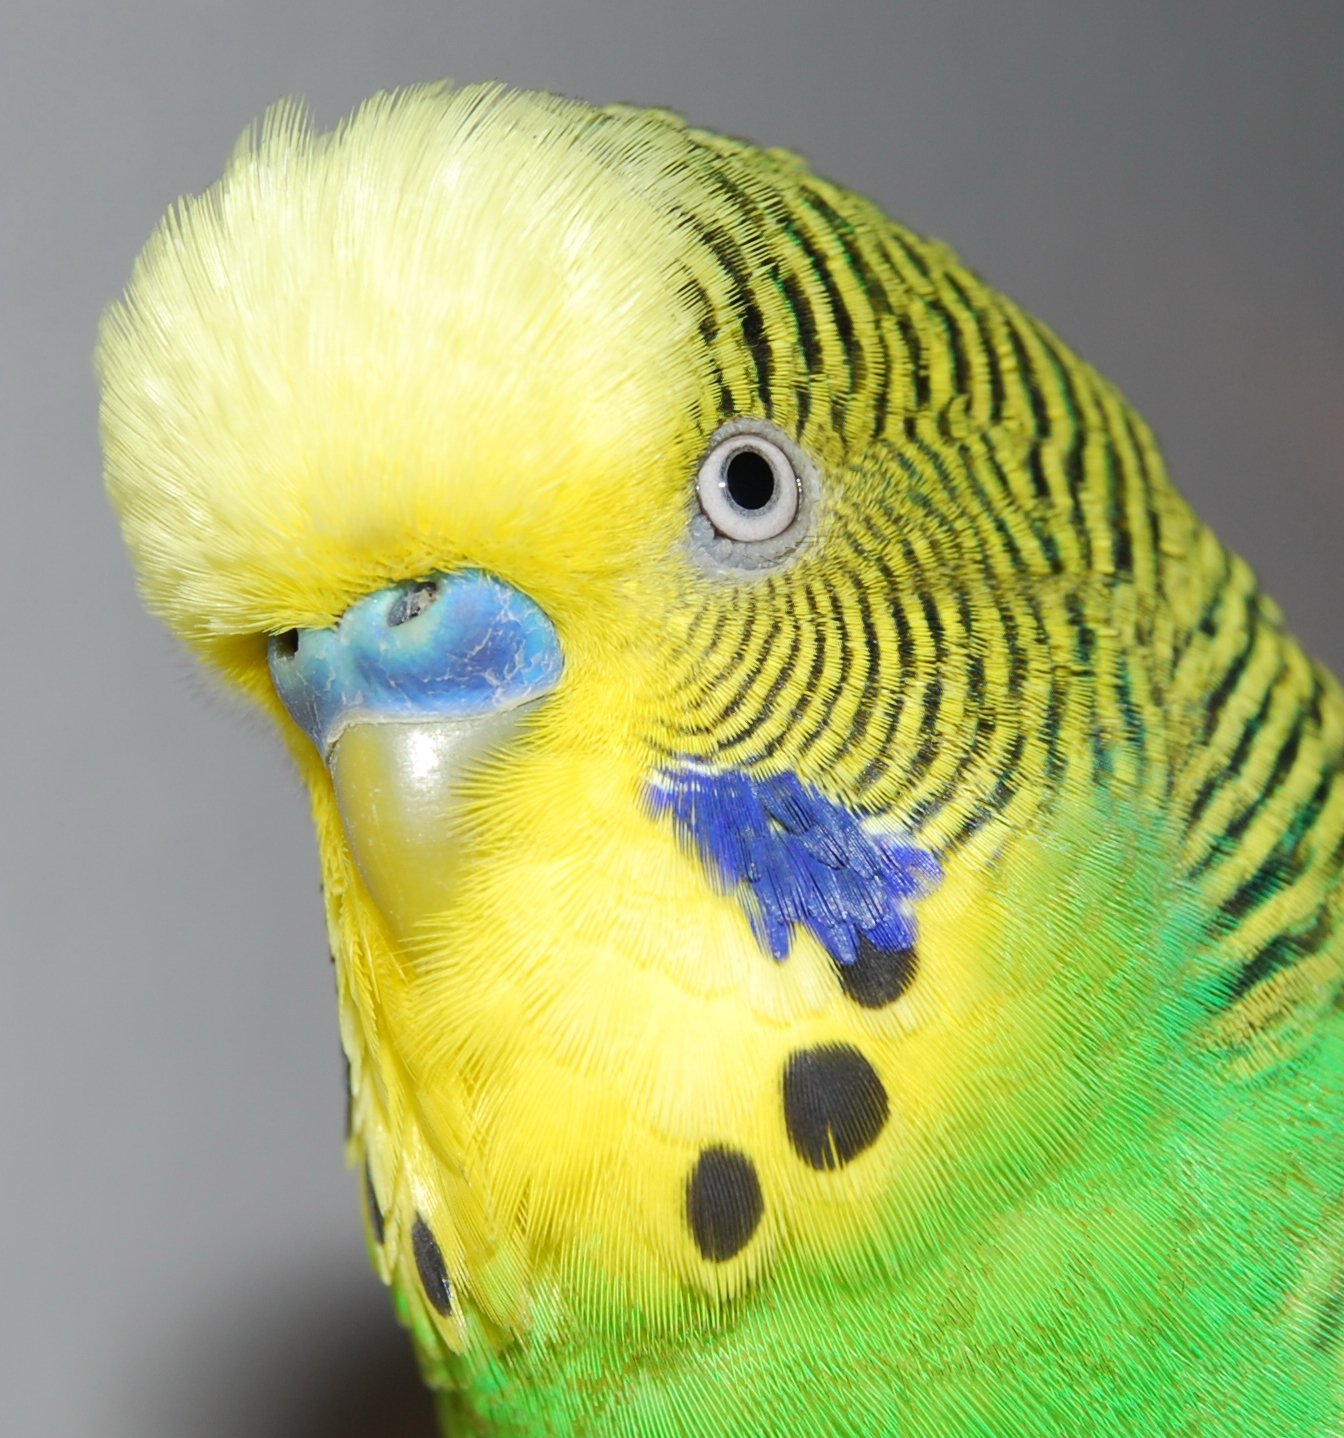 Detail_shot_of_budgerigars_head.jpg